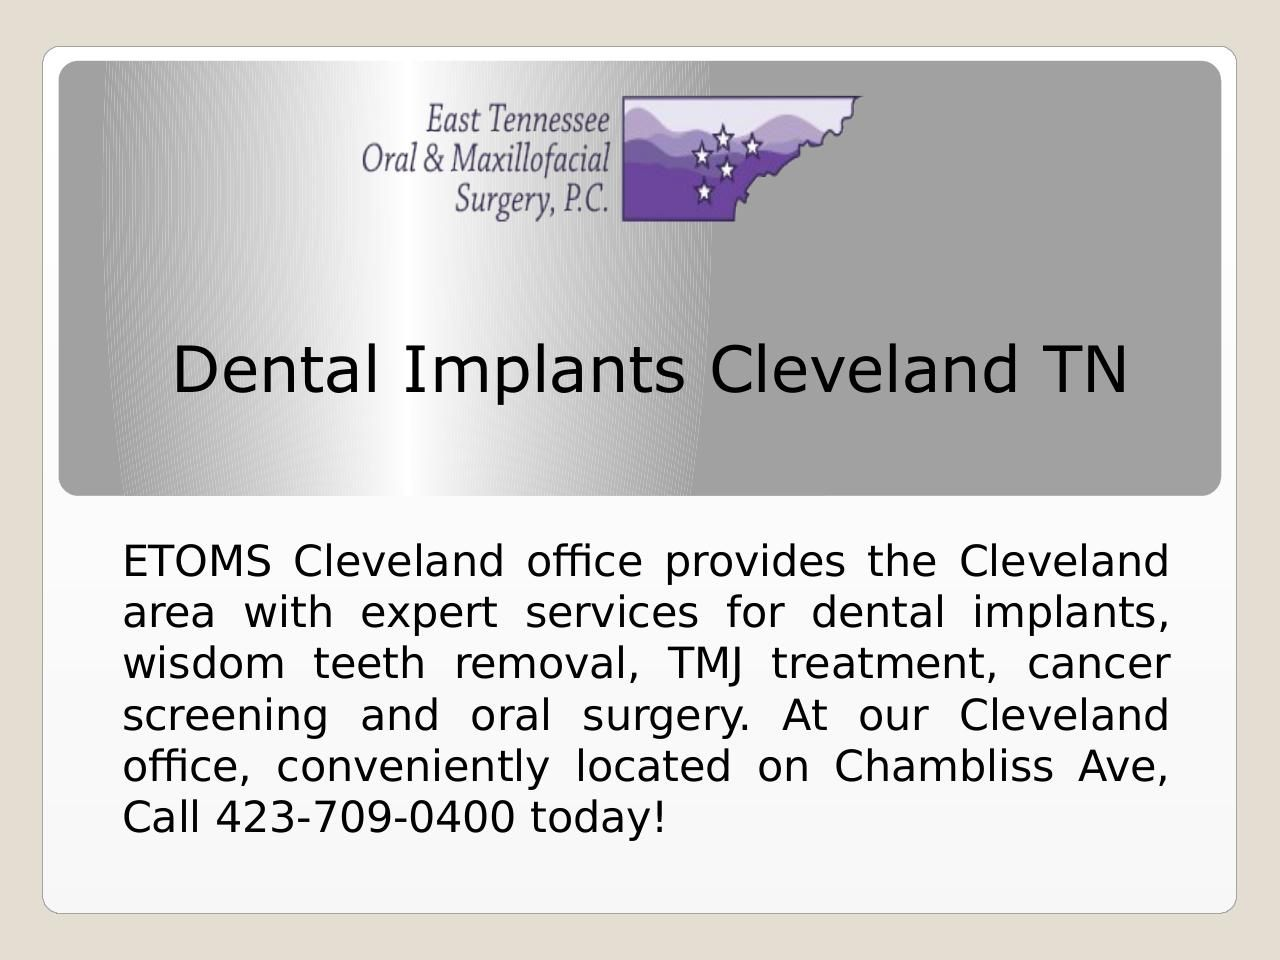 Dental implants are replacement tooth roots. Dental